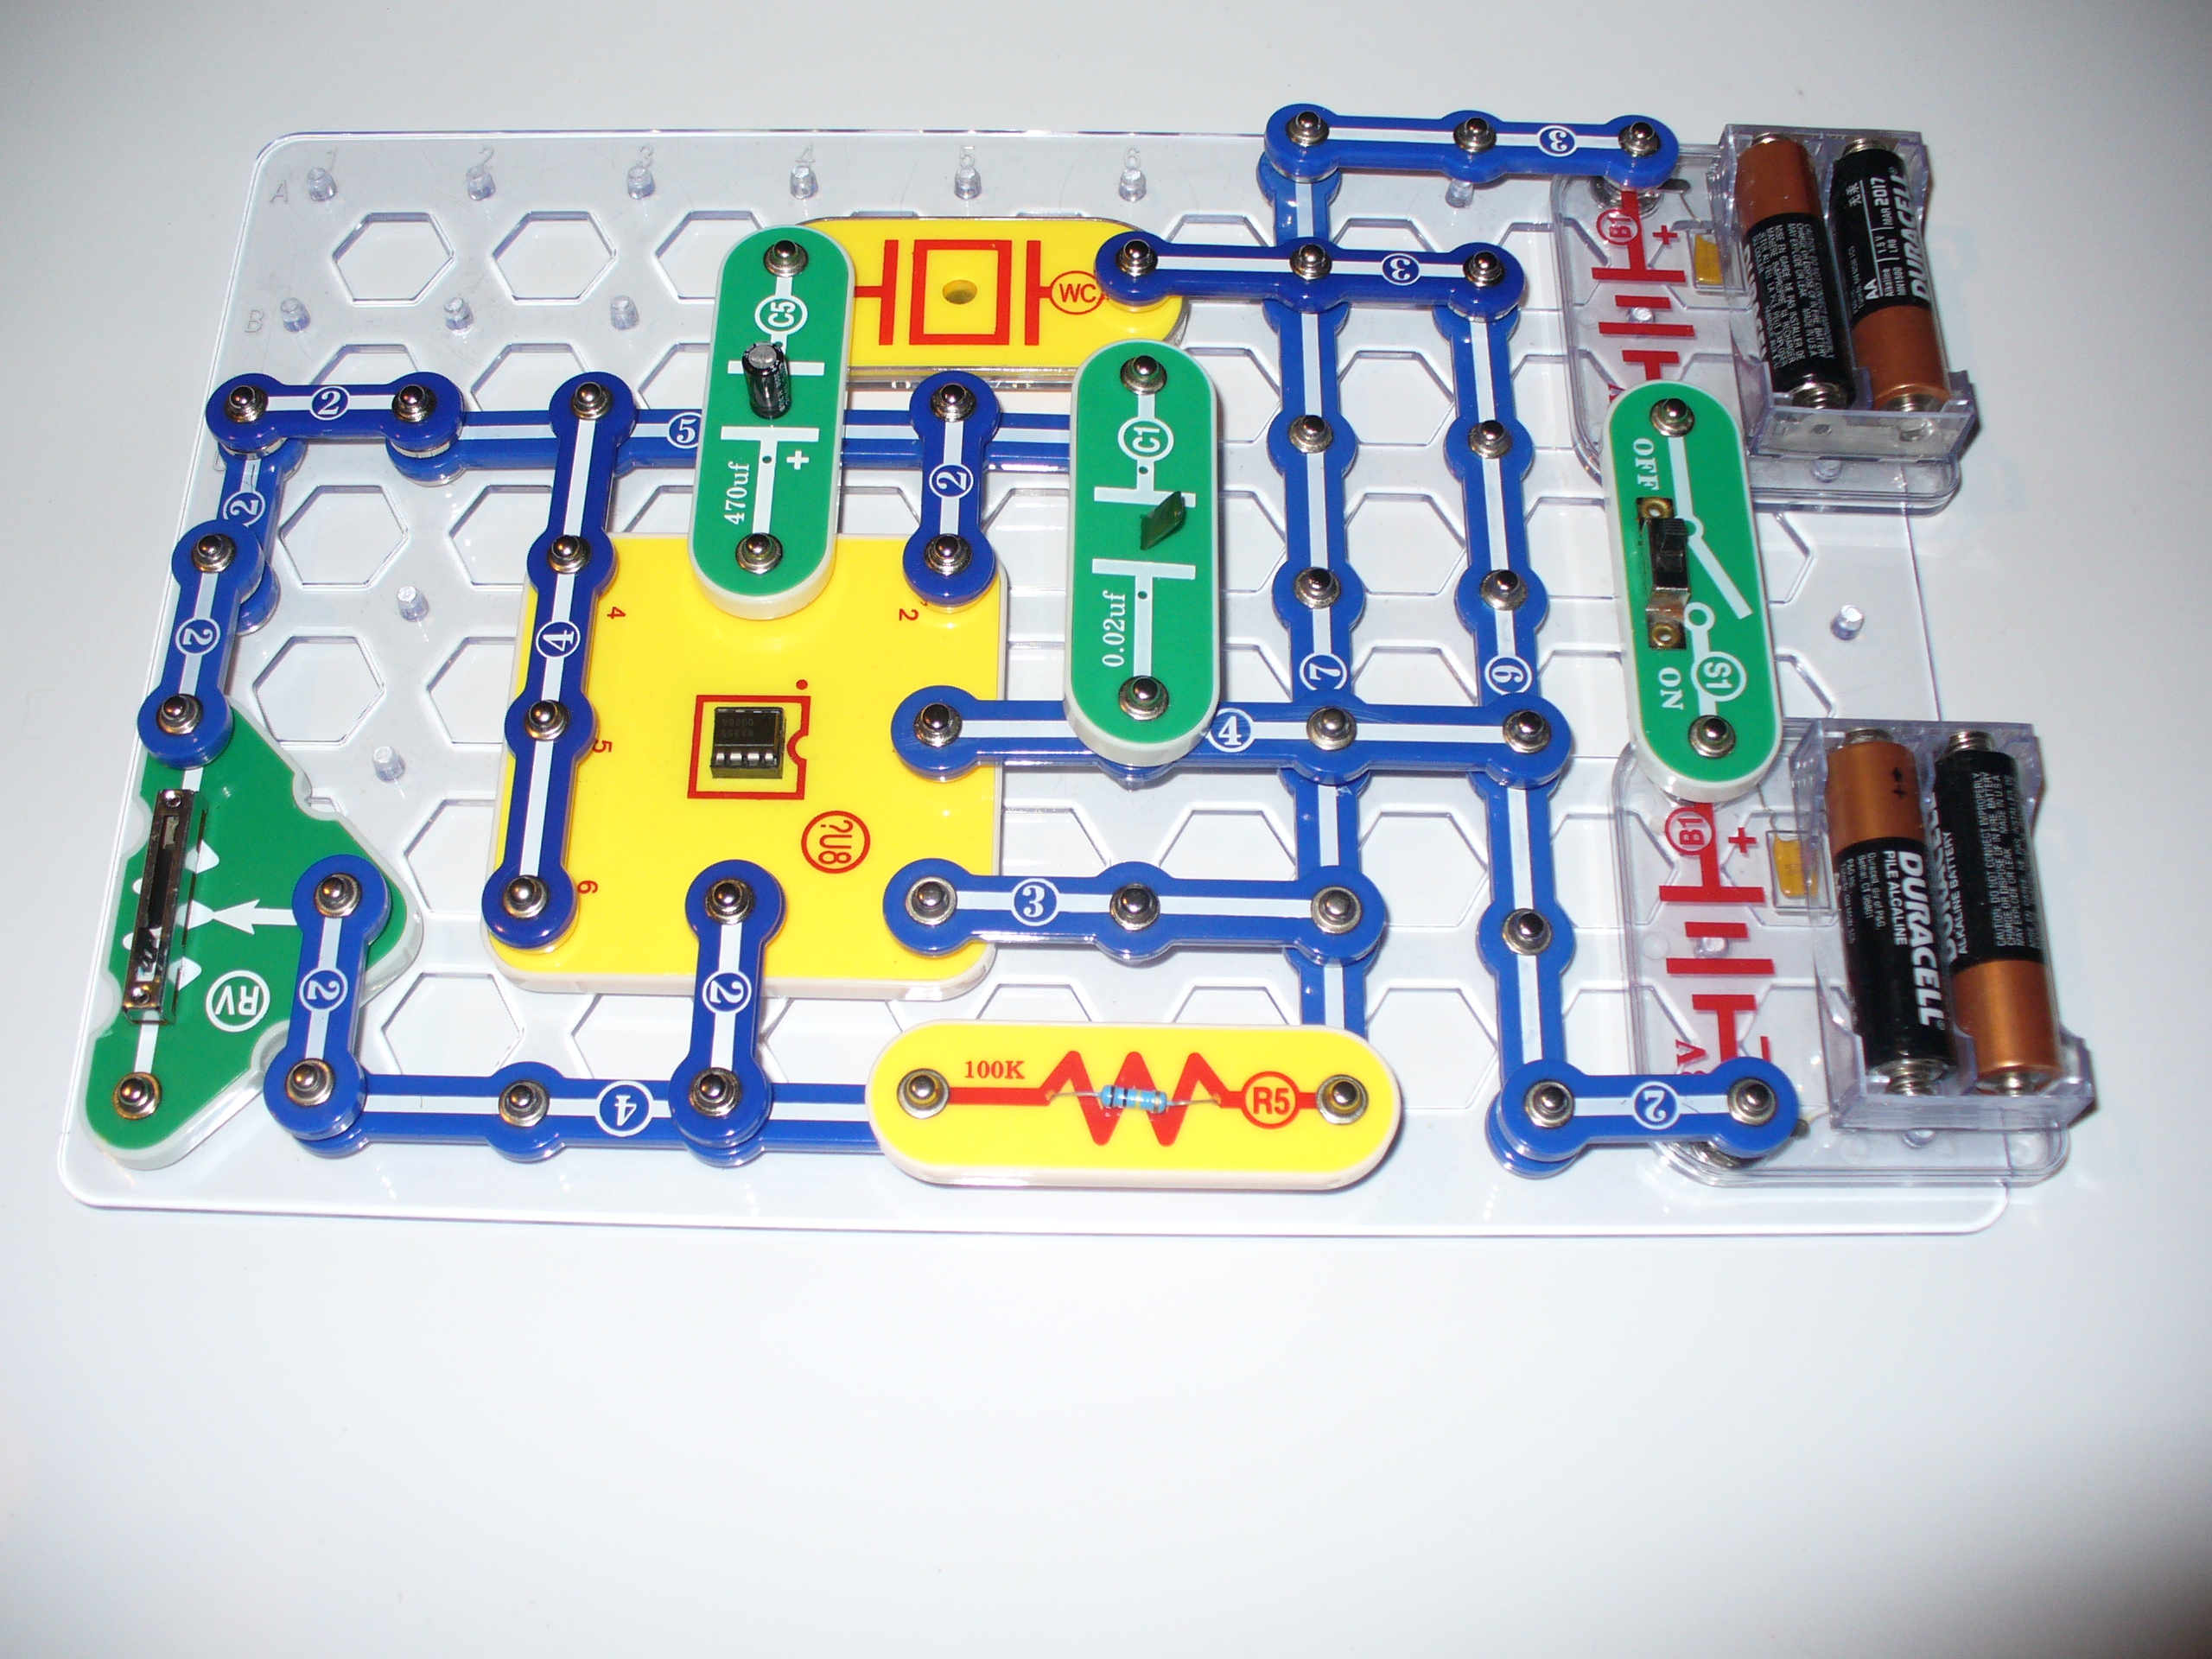 Snap Circuits Jr Project Book The Book Contains Instructions On Over